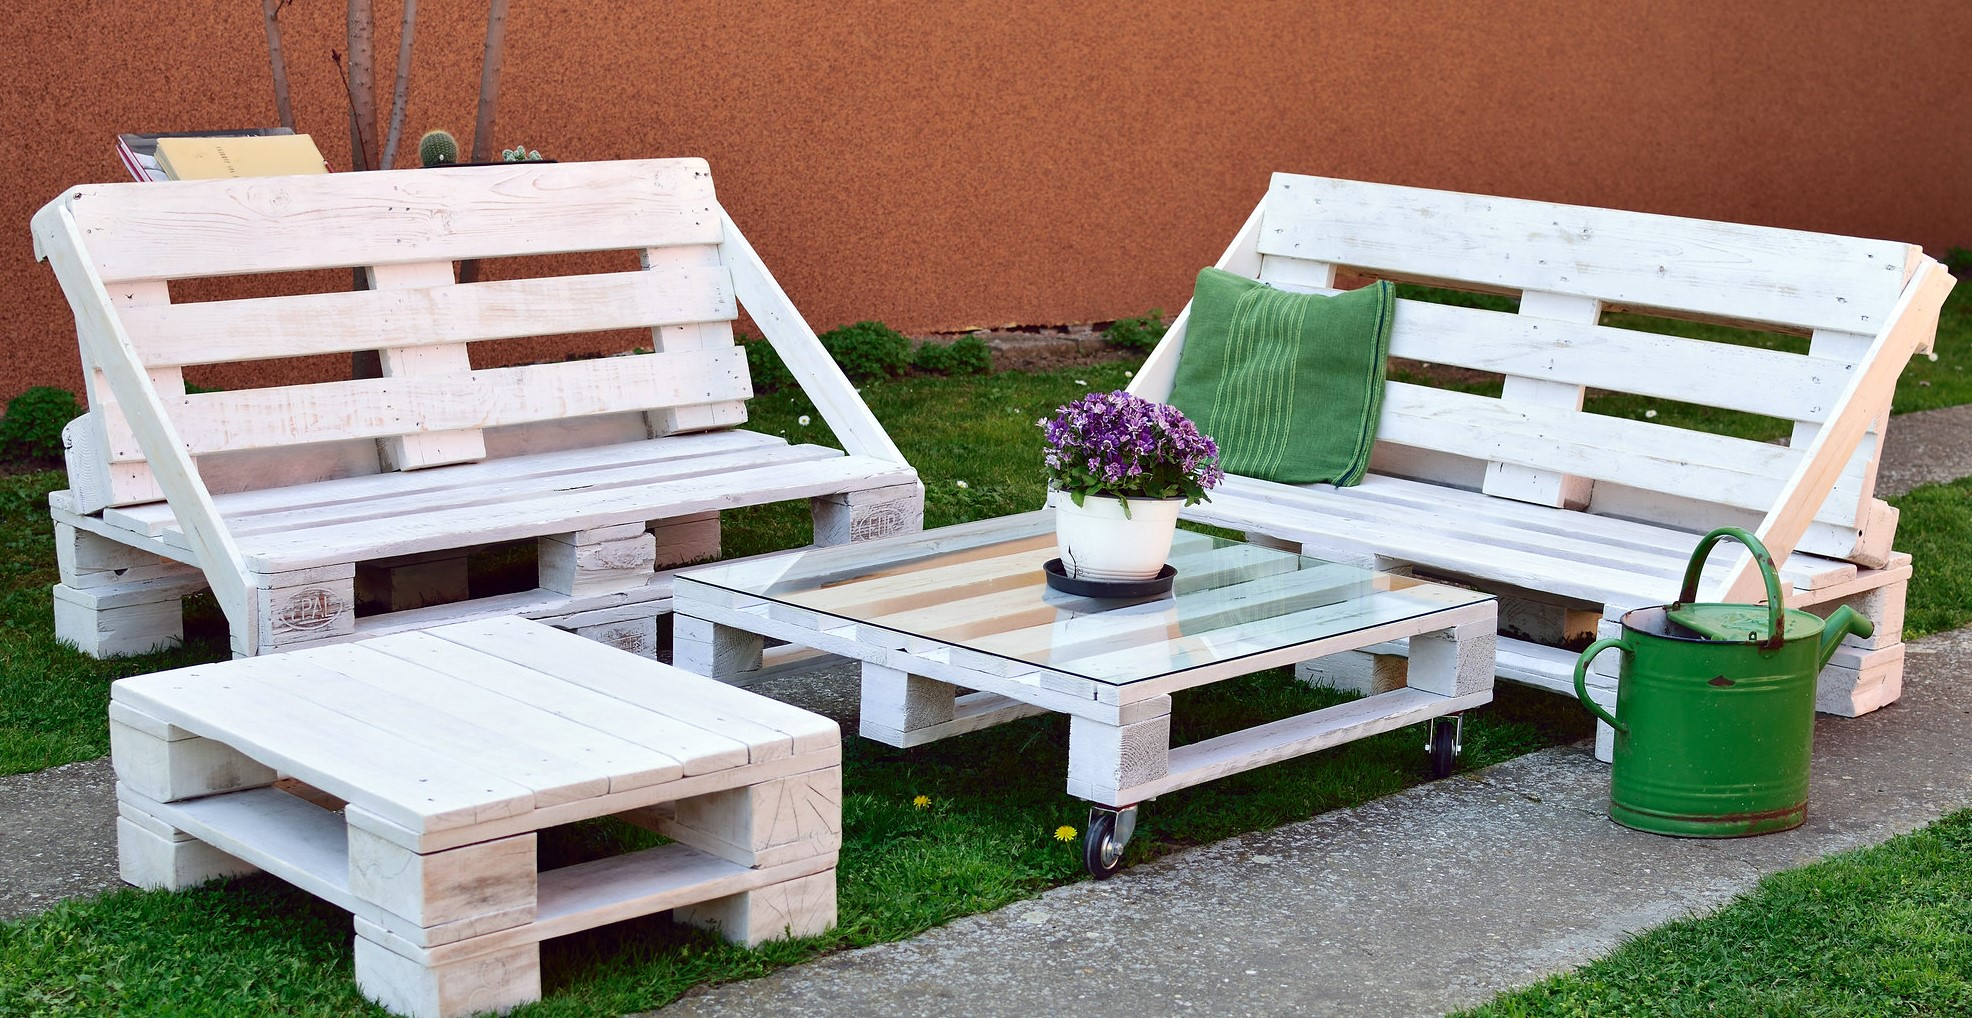 Pallet furniture - step by step